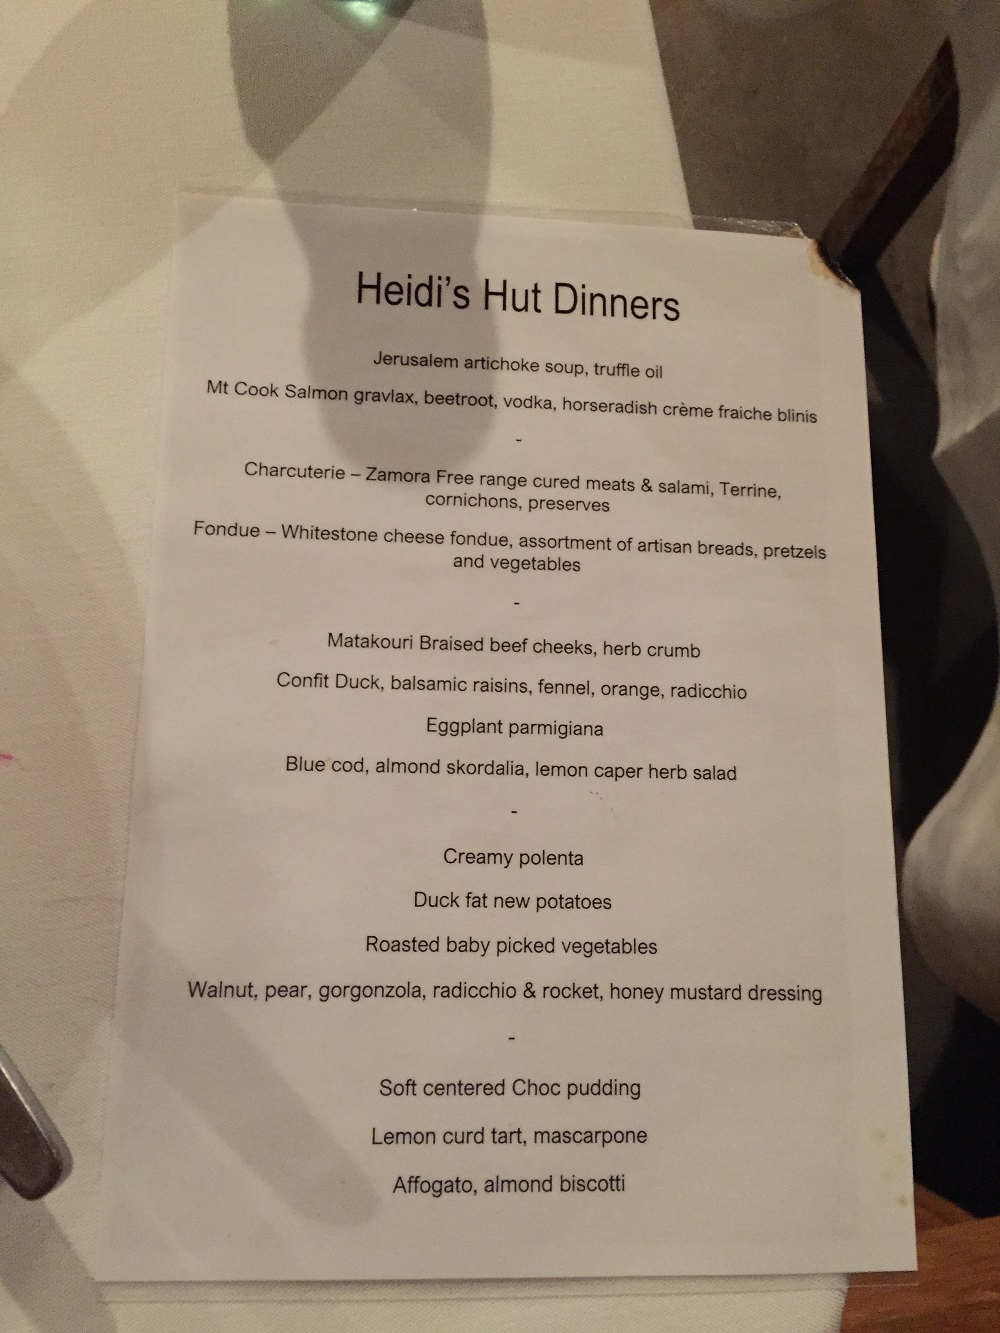 The 2018 Heidi's hut menu